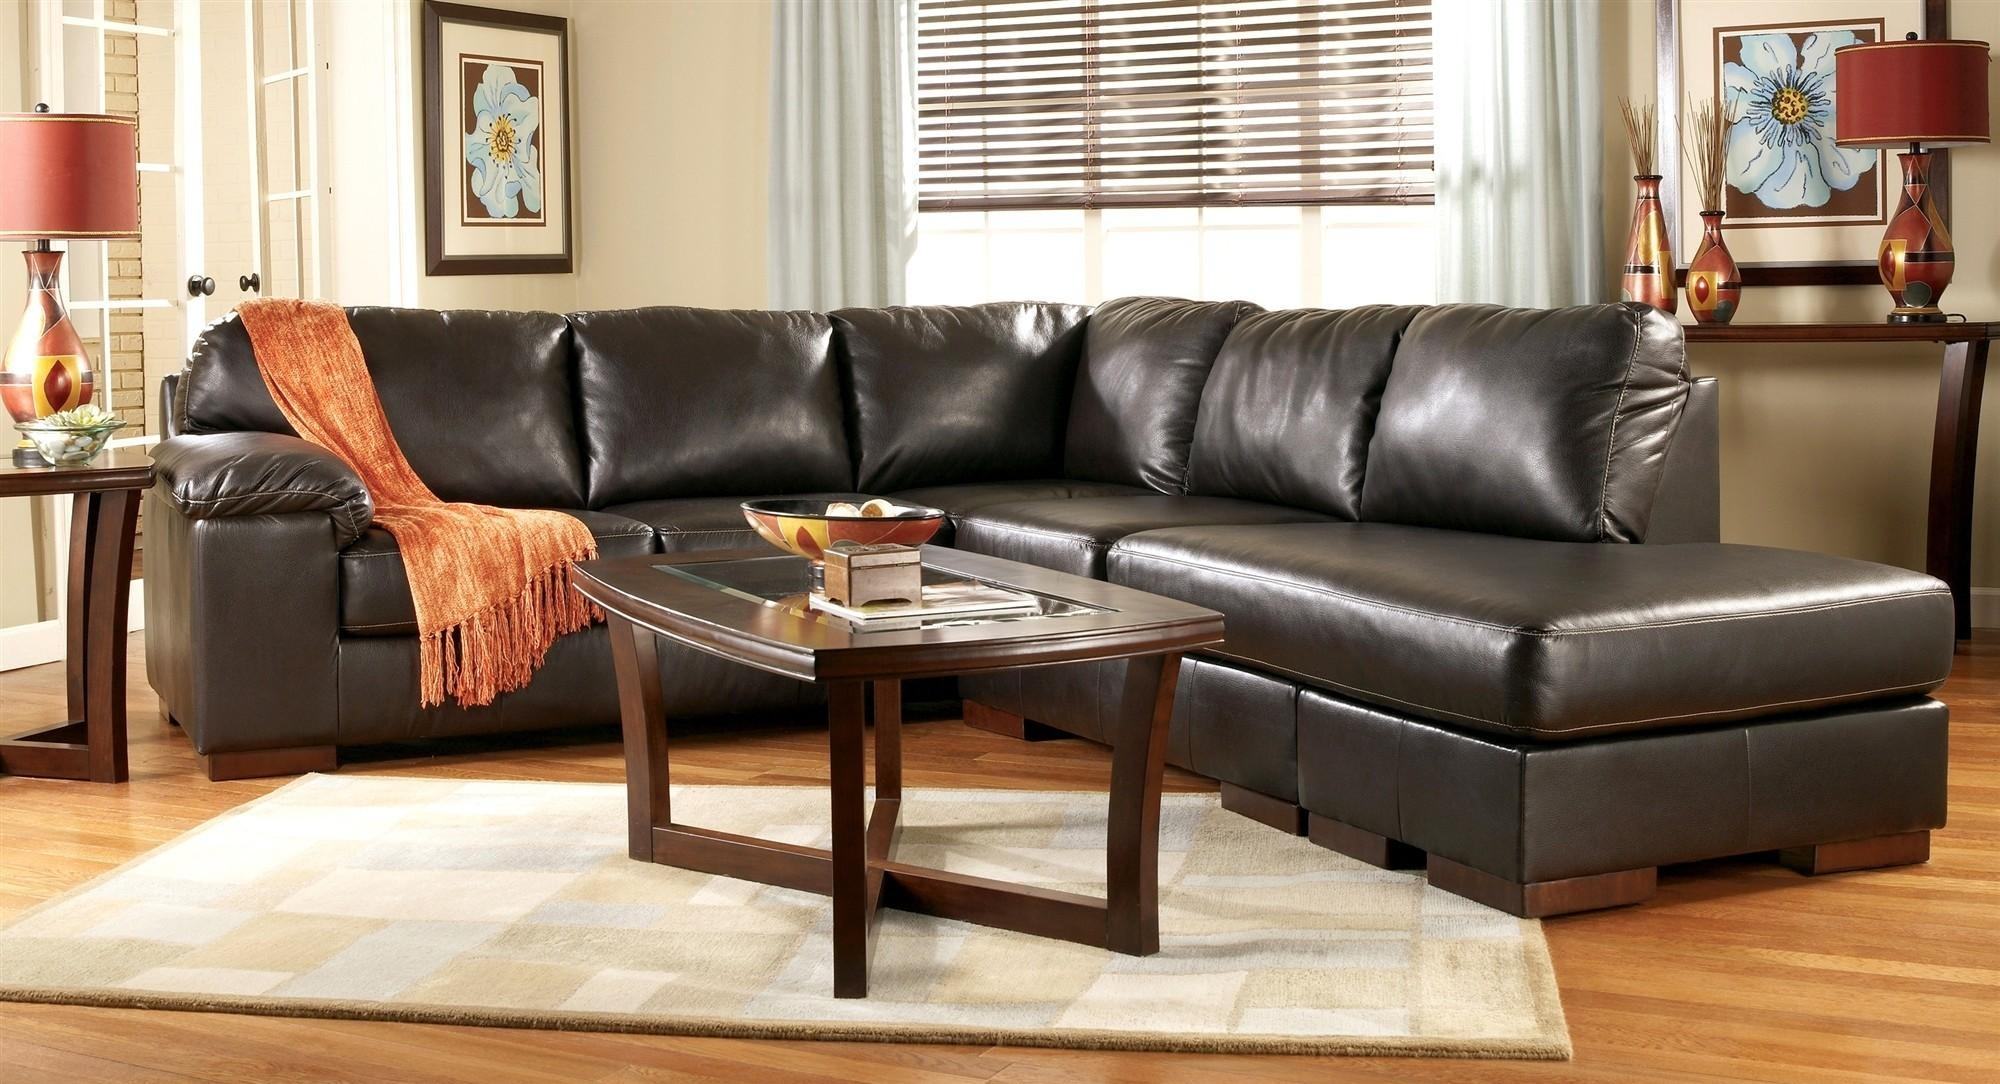 red leather sofa living room ideas disassemble ashley recliner 20 best dark couches